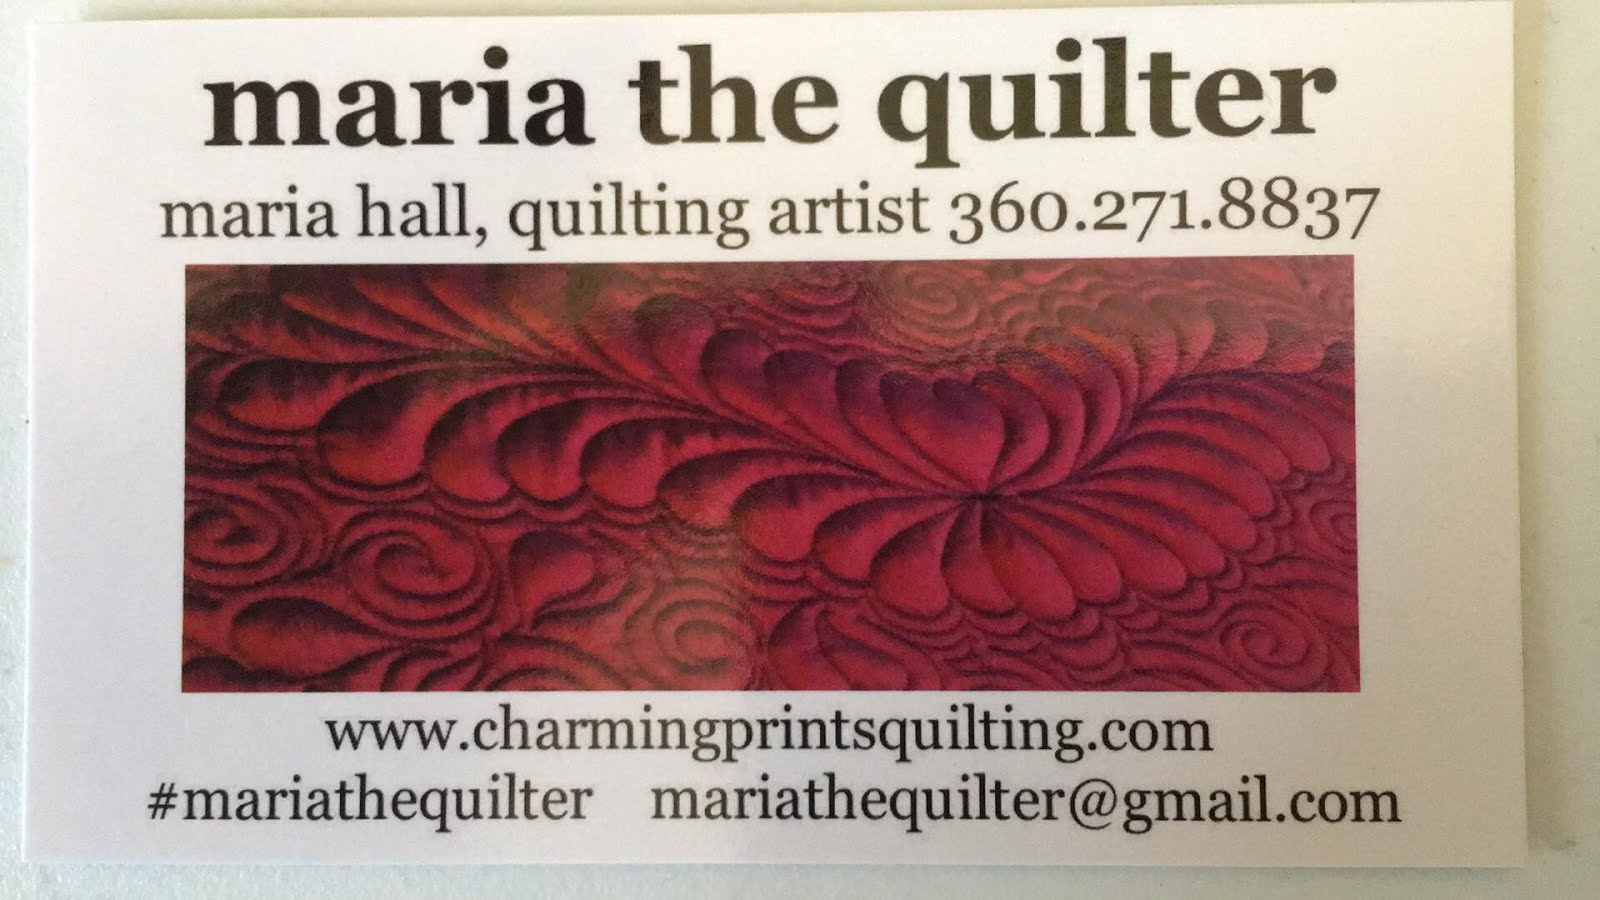 Do You Need A Quilter?